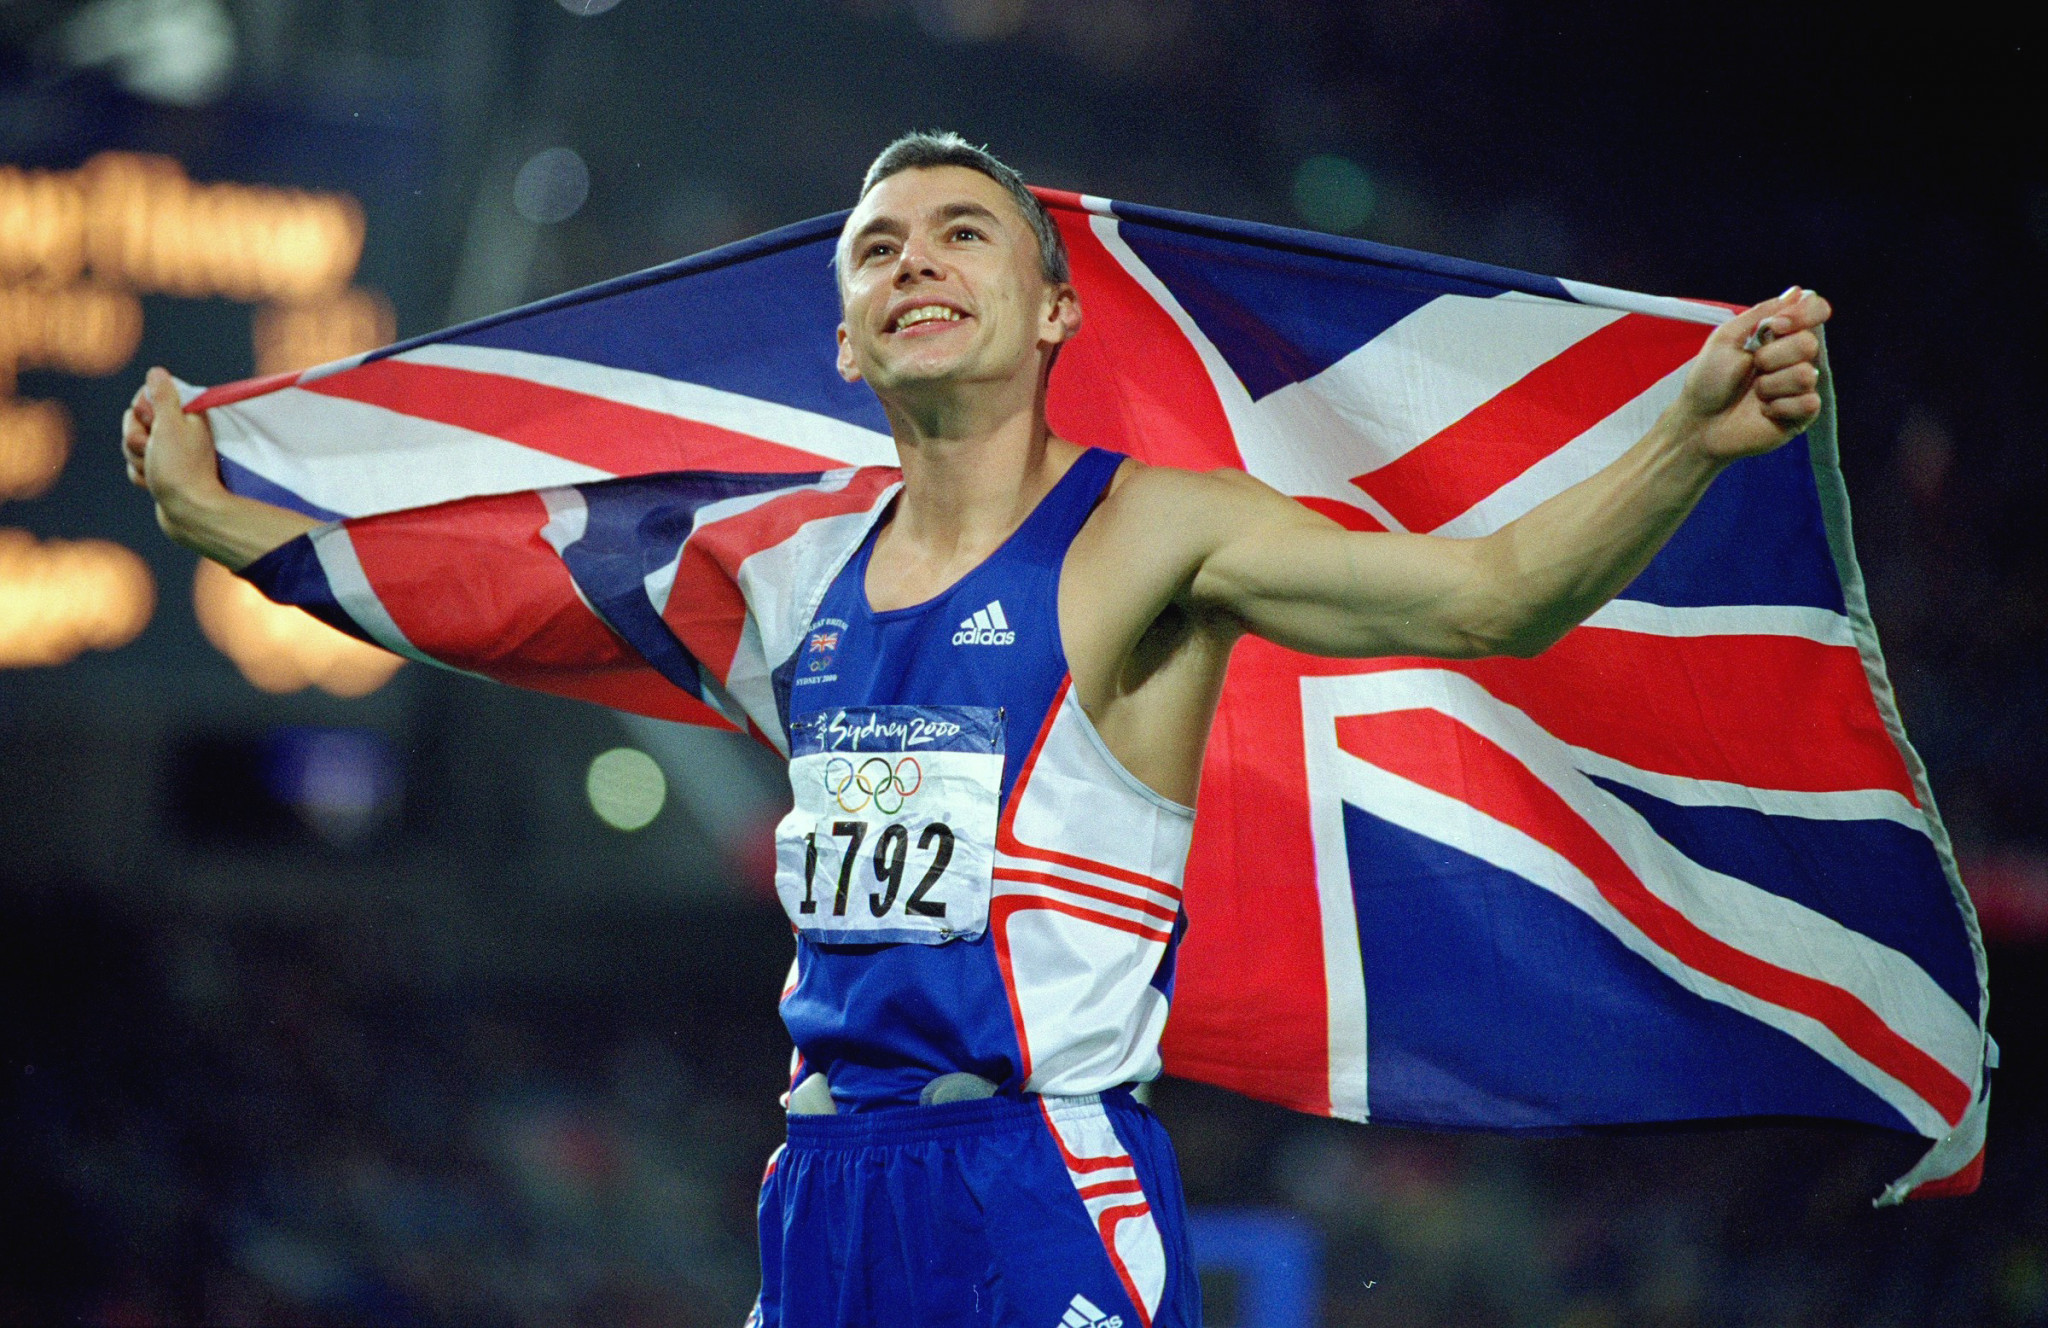 Five years after setting the triple jump world record of 18.29m in winning the world title at Gothenburg, Britain's Jonathan Edwards, at the age of 34, completed his athletics CV with the Olympic title in Sydney ©Getty Images